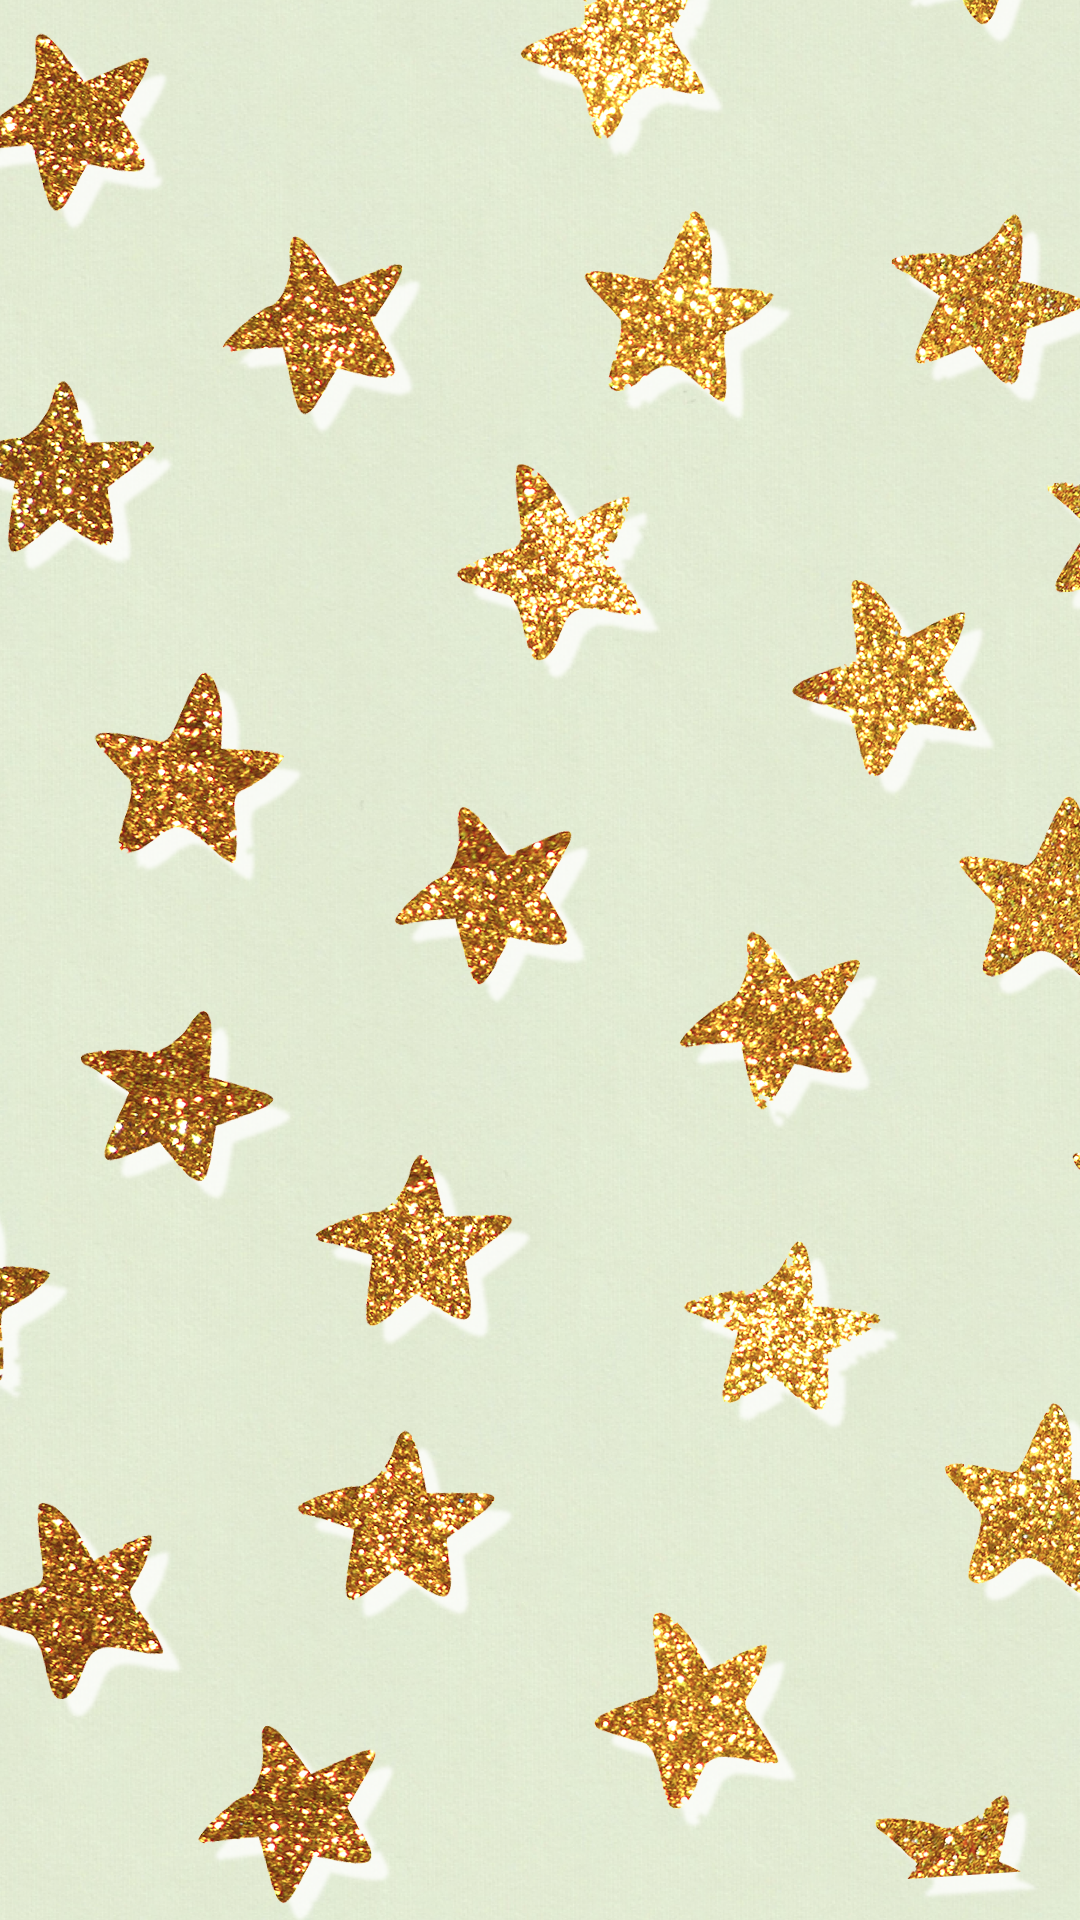 Trendy star mint wallpaper iPhone background home screen